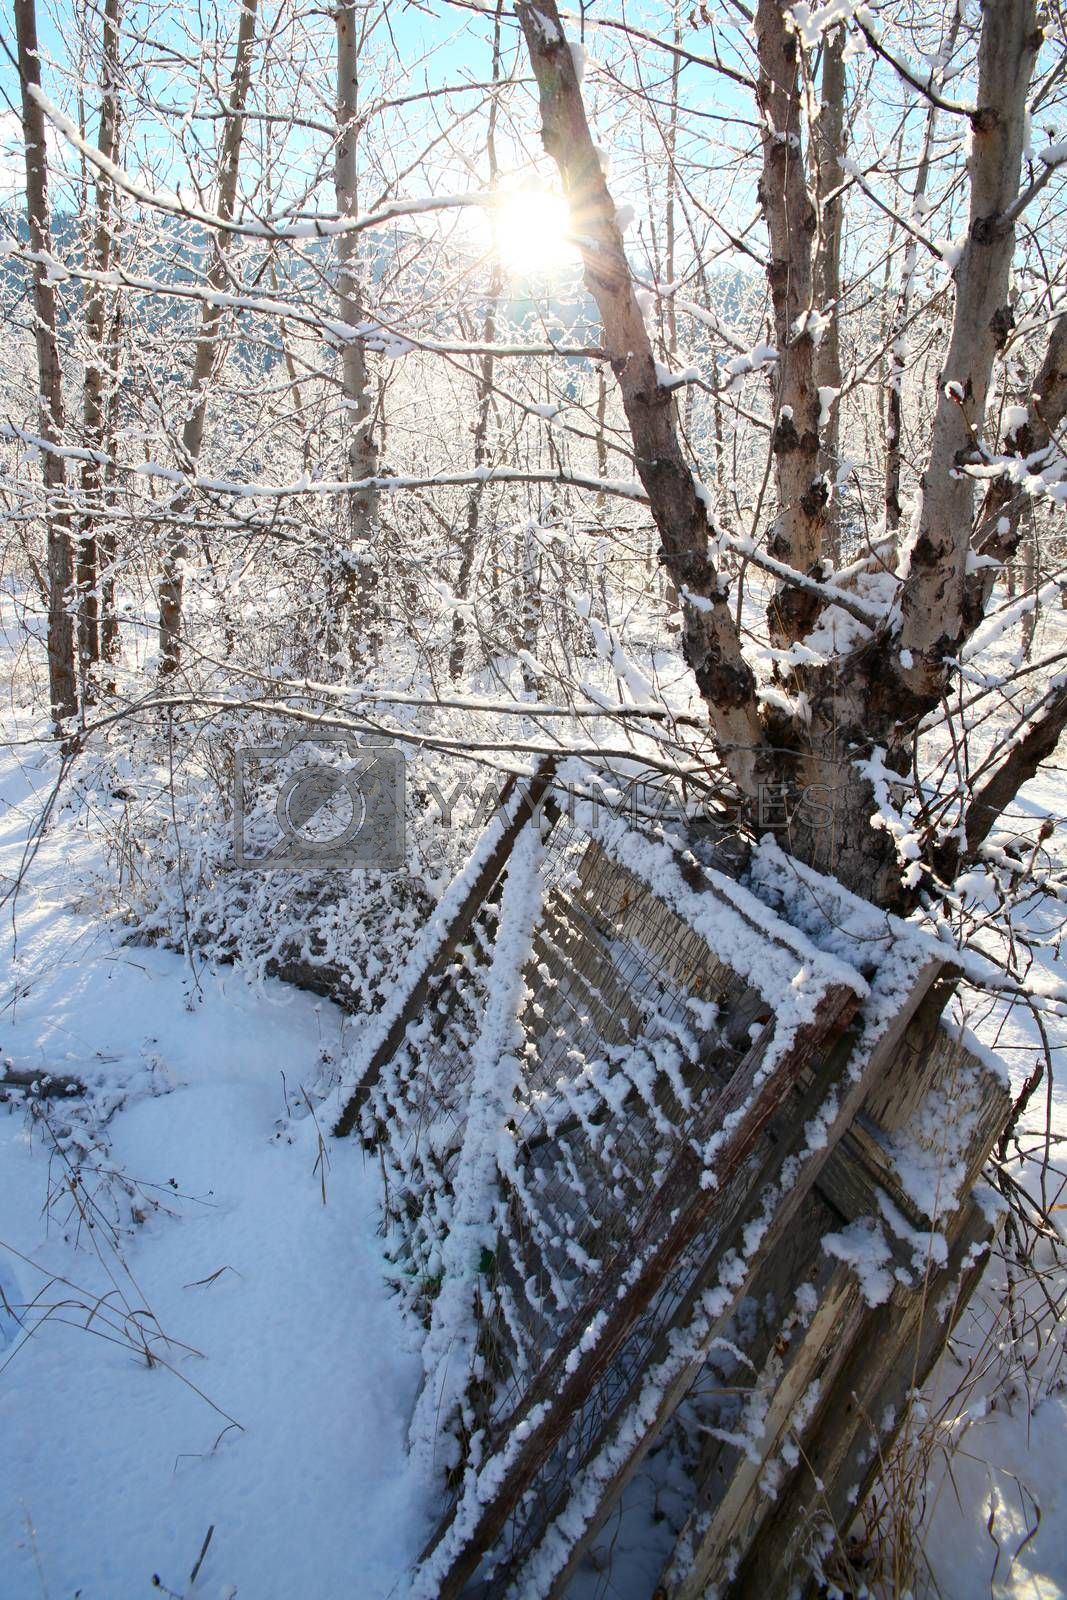 Old gates leaning against a tree, covered in snow